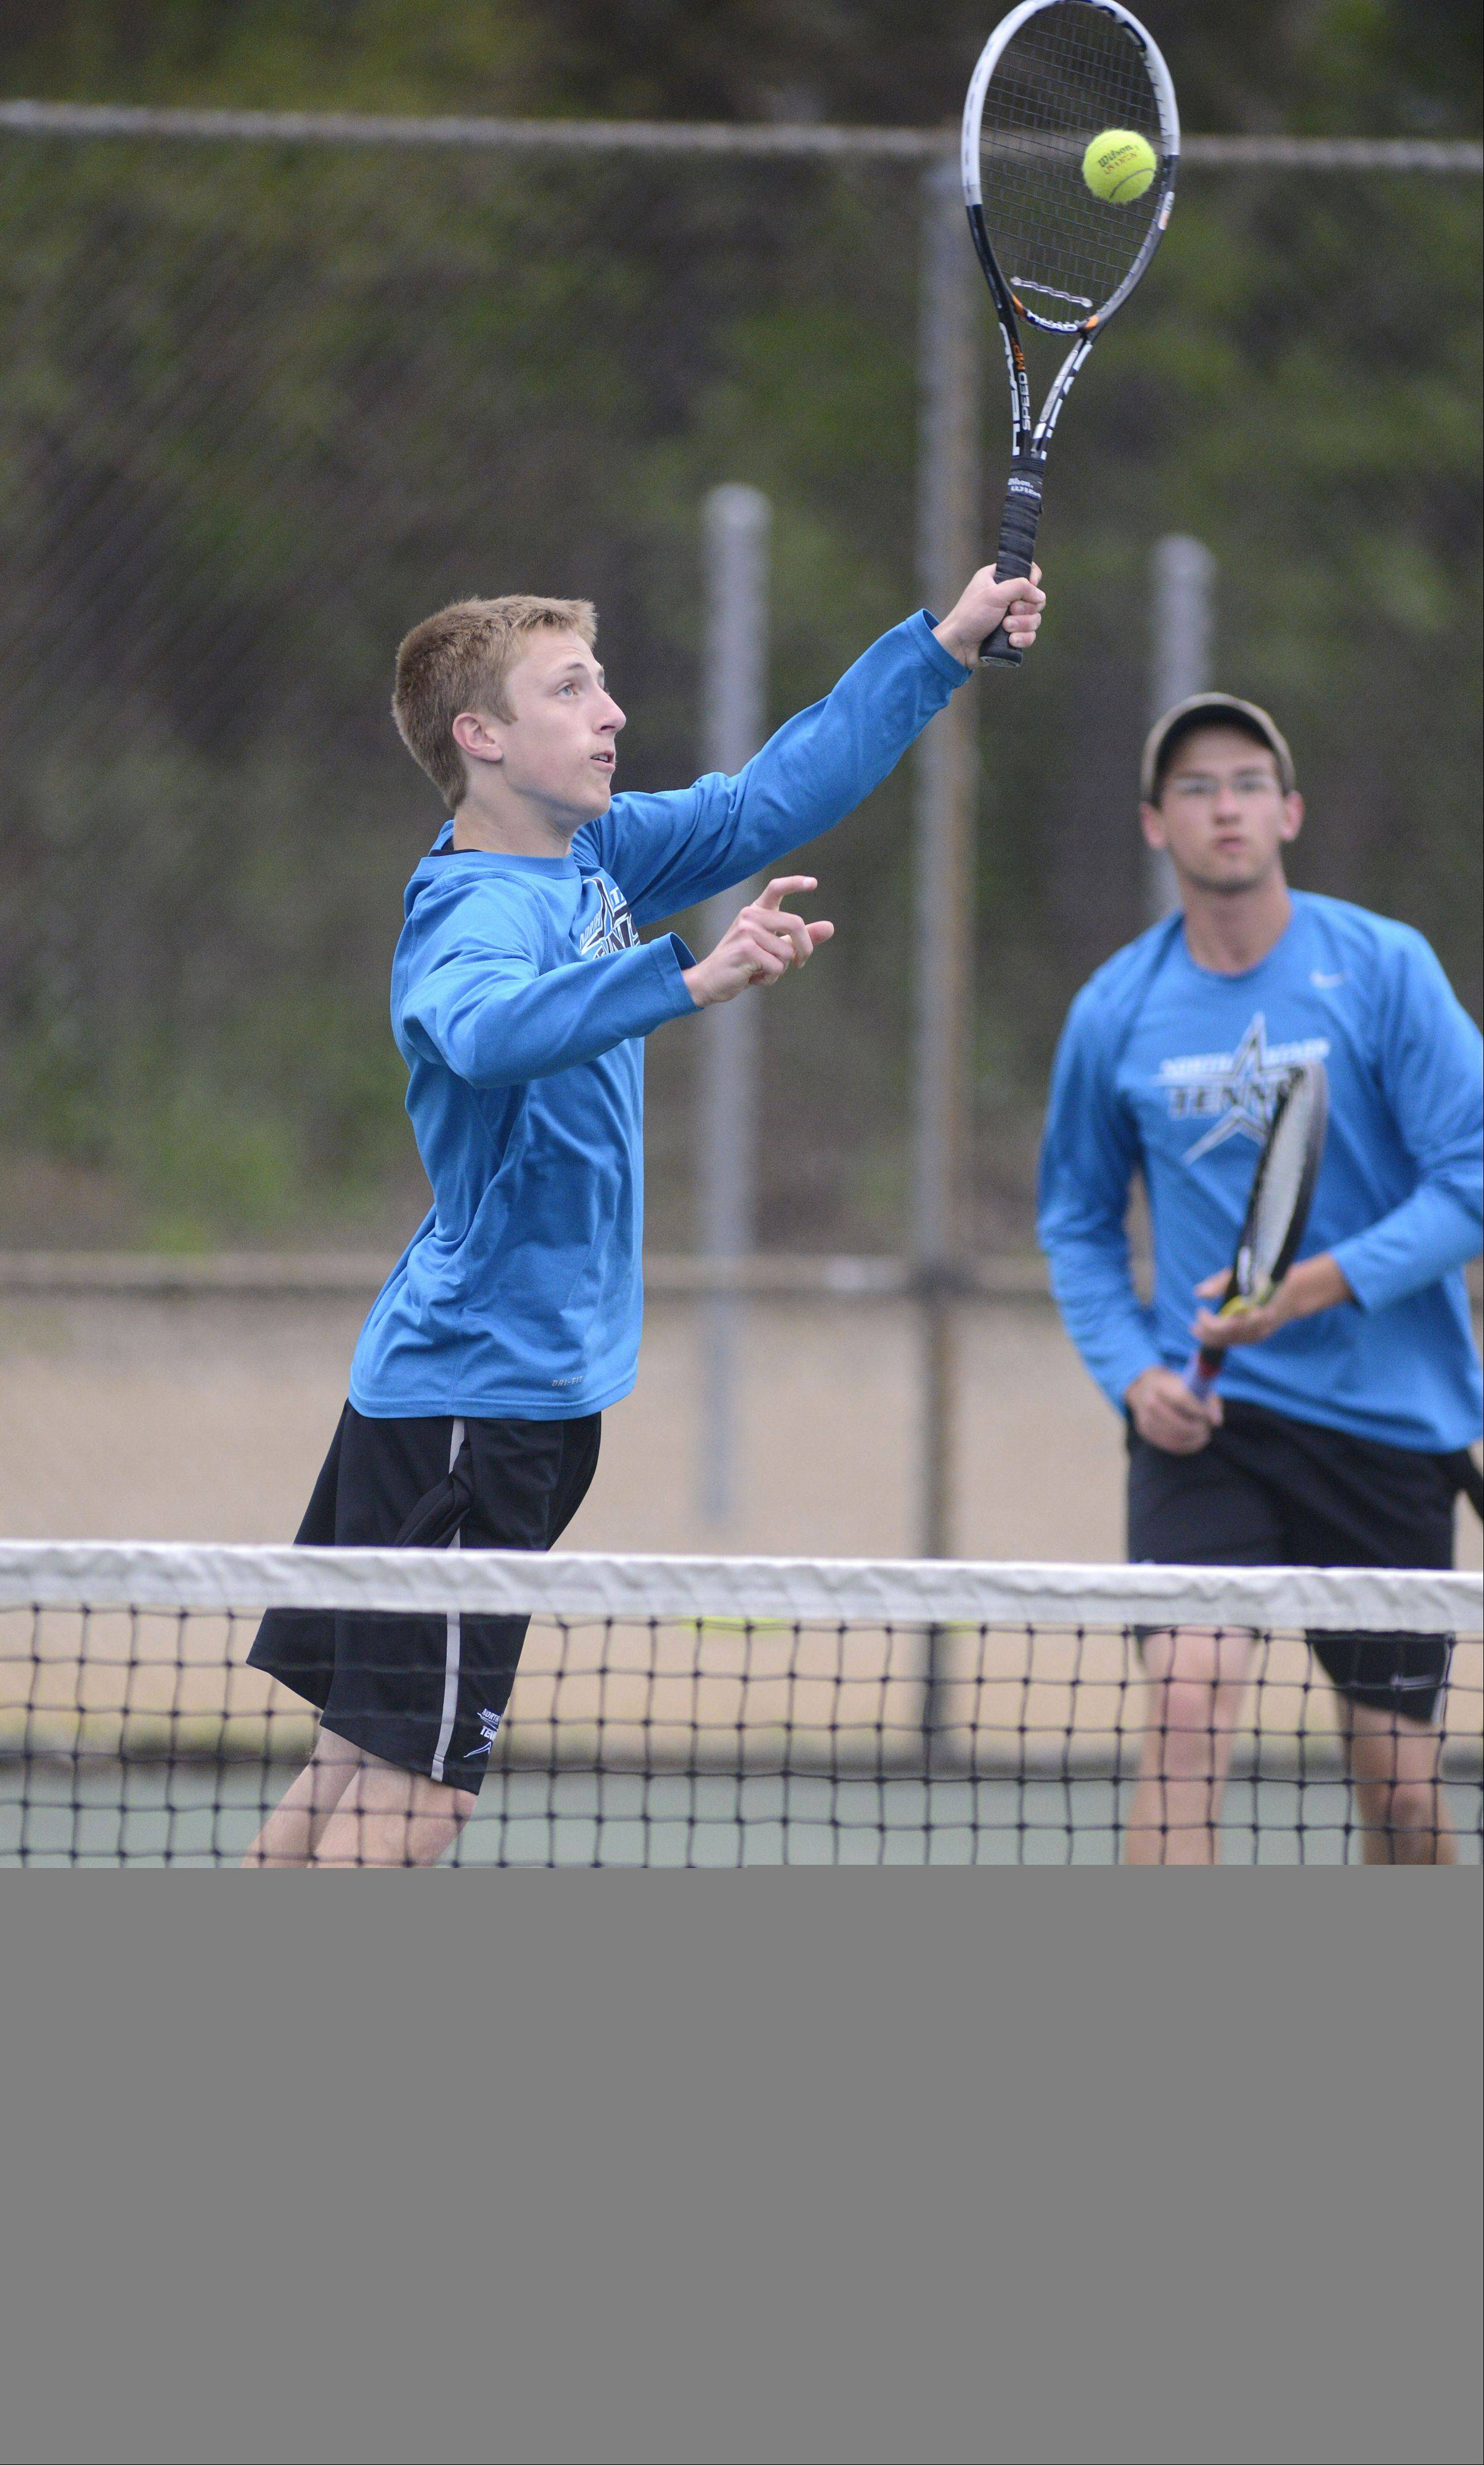 St. Charles North�s Keith Hedges returns a hit from Batavia in the first place, first doubles match with teammate Grant Spellman in the Upstate Eight Conference at Elgin High School on Saturday, May 11.